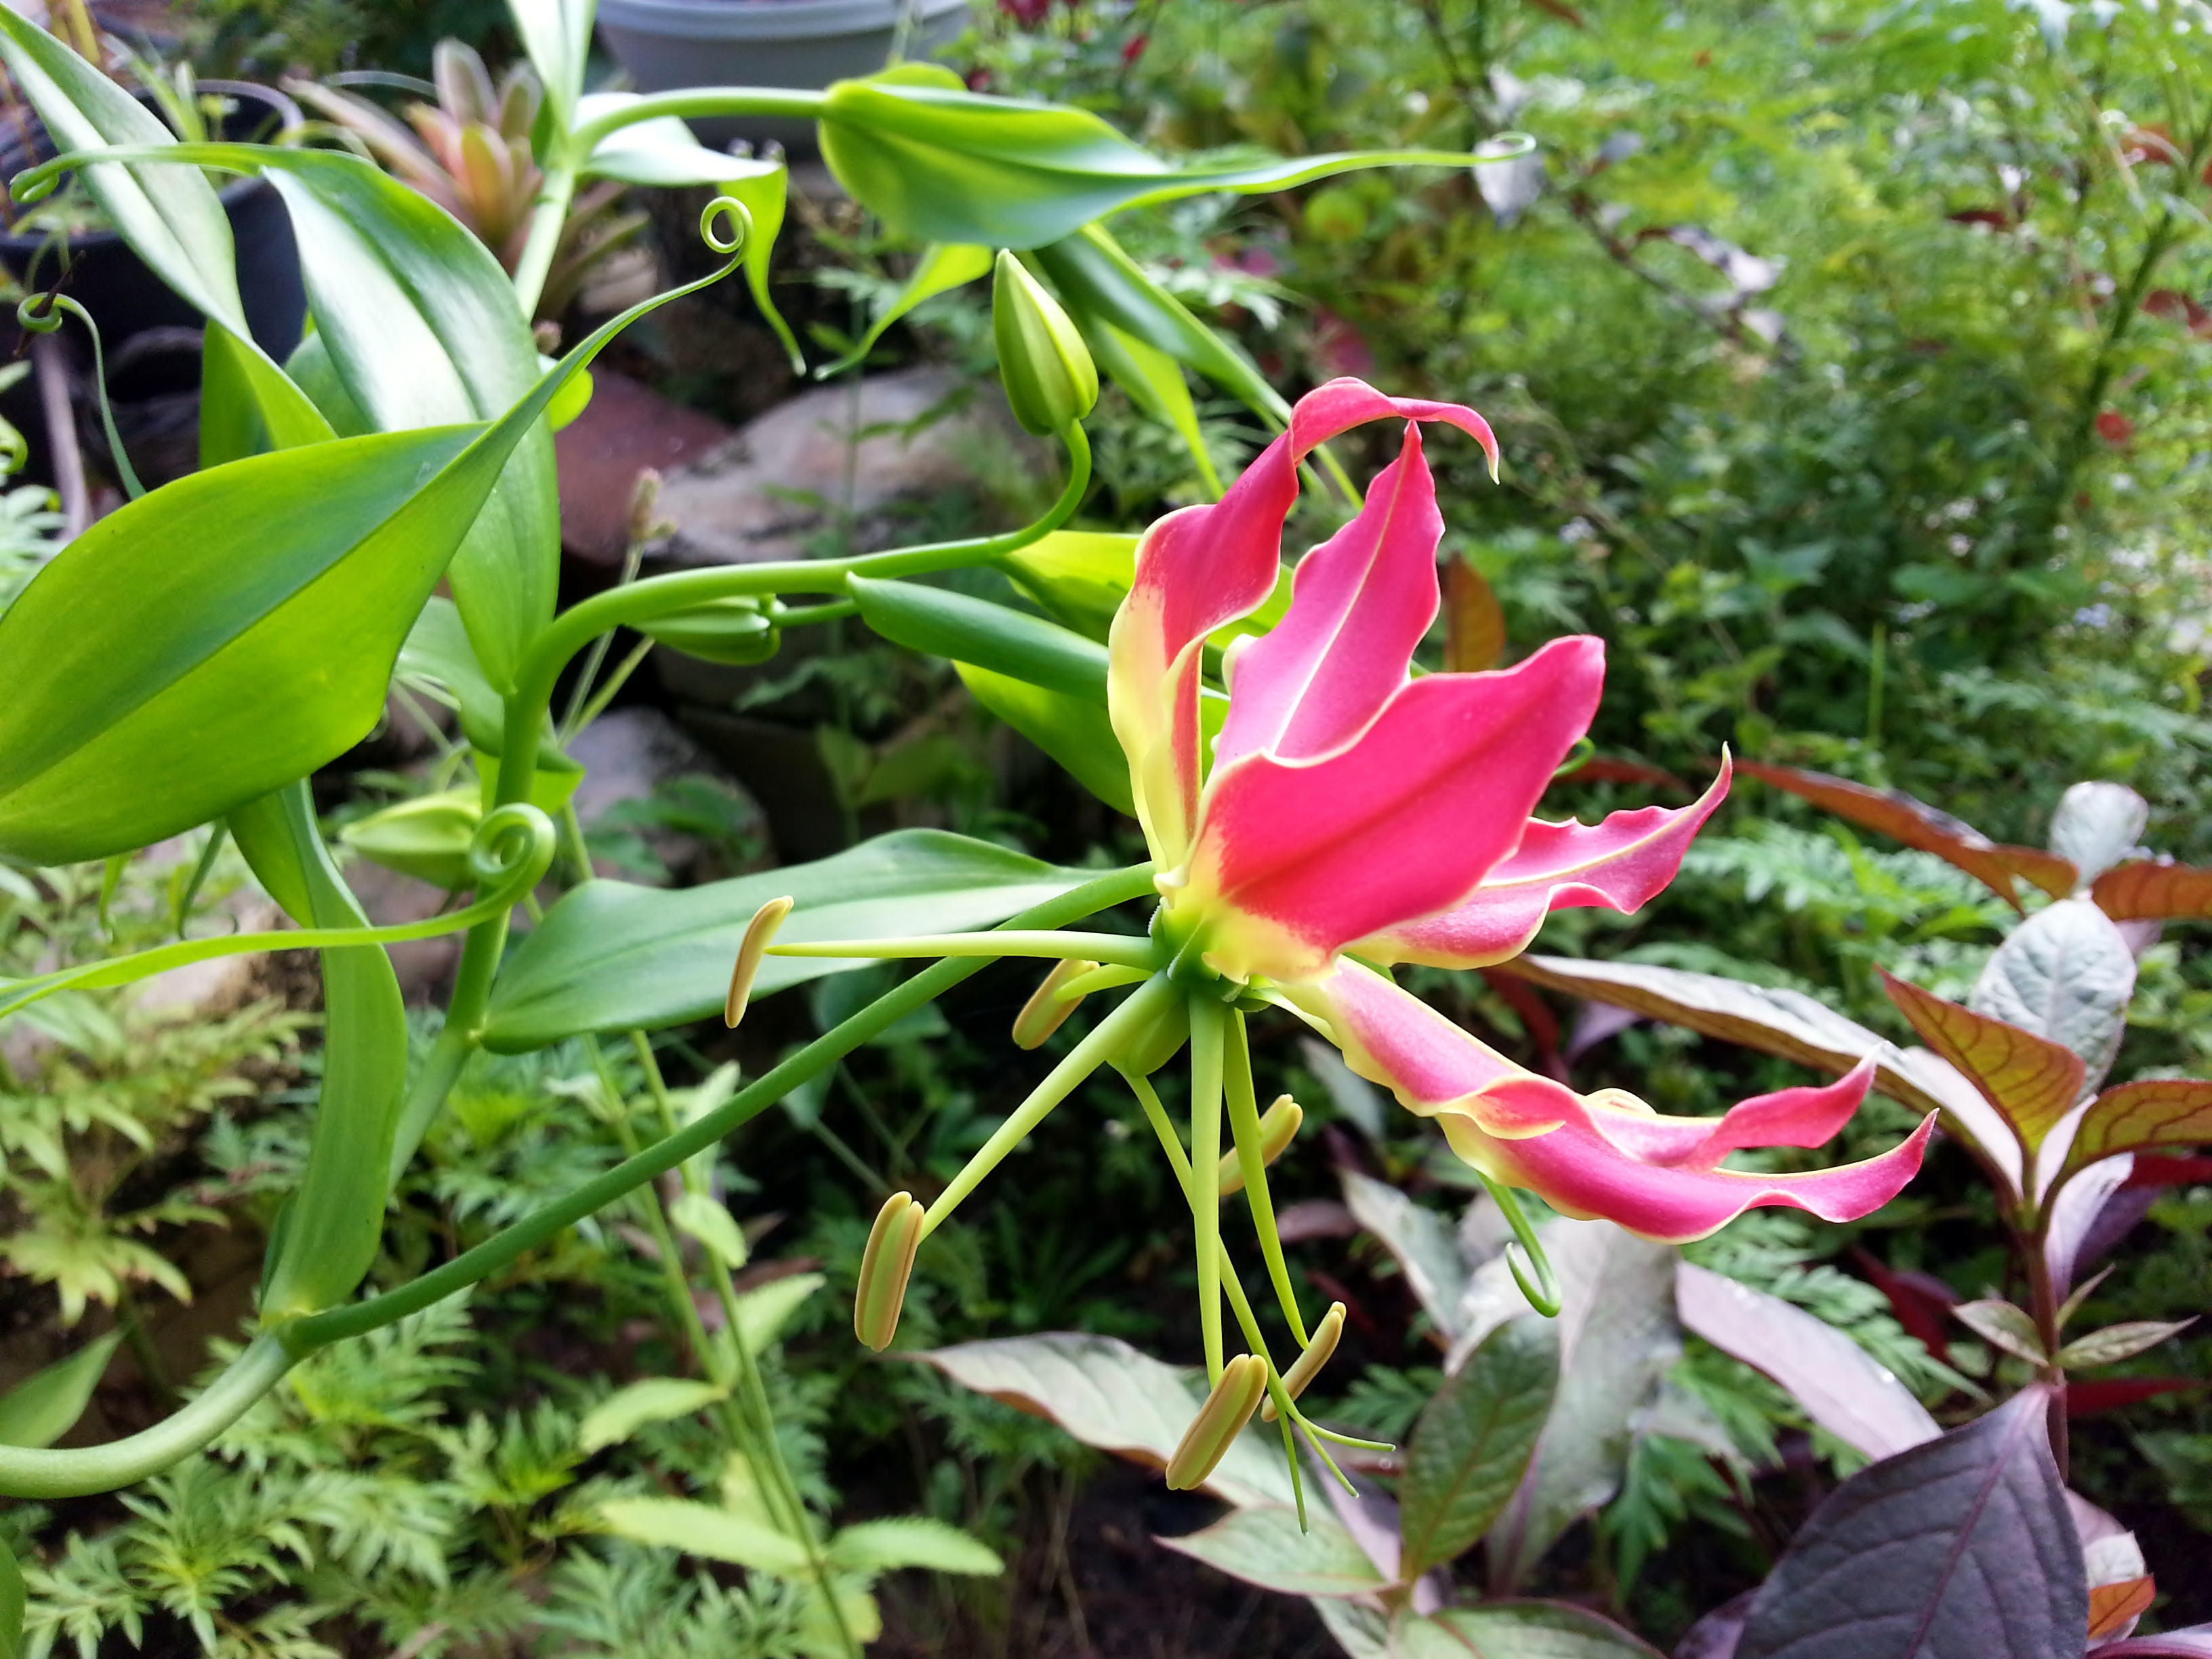 Flame Lily Update: It's Opening!